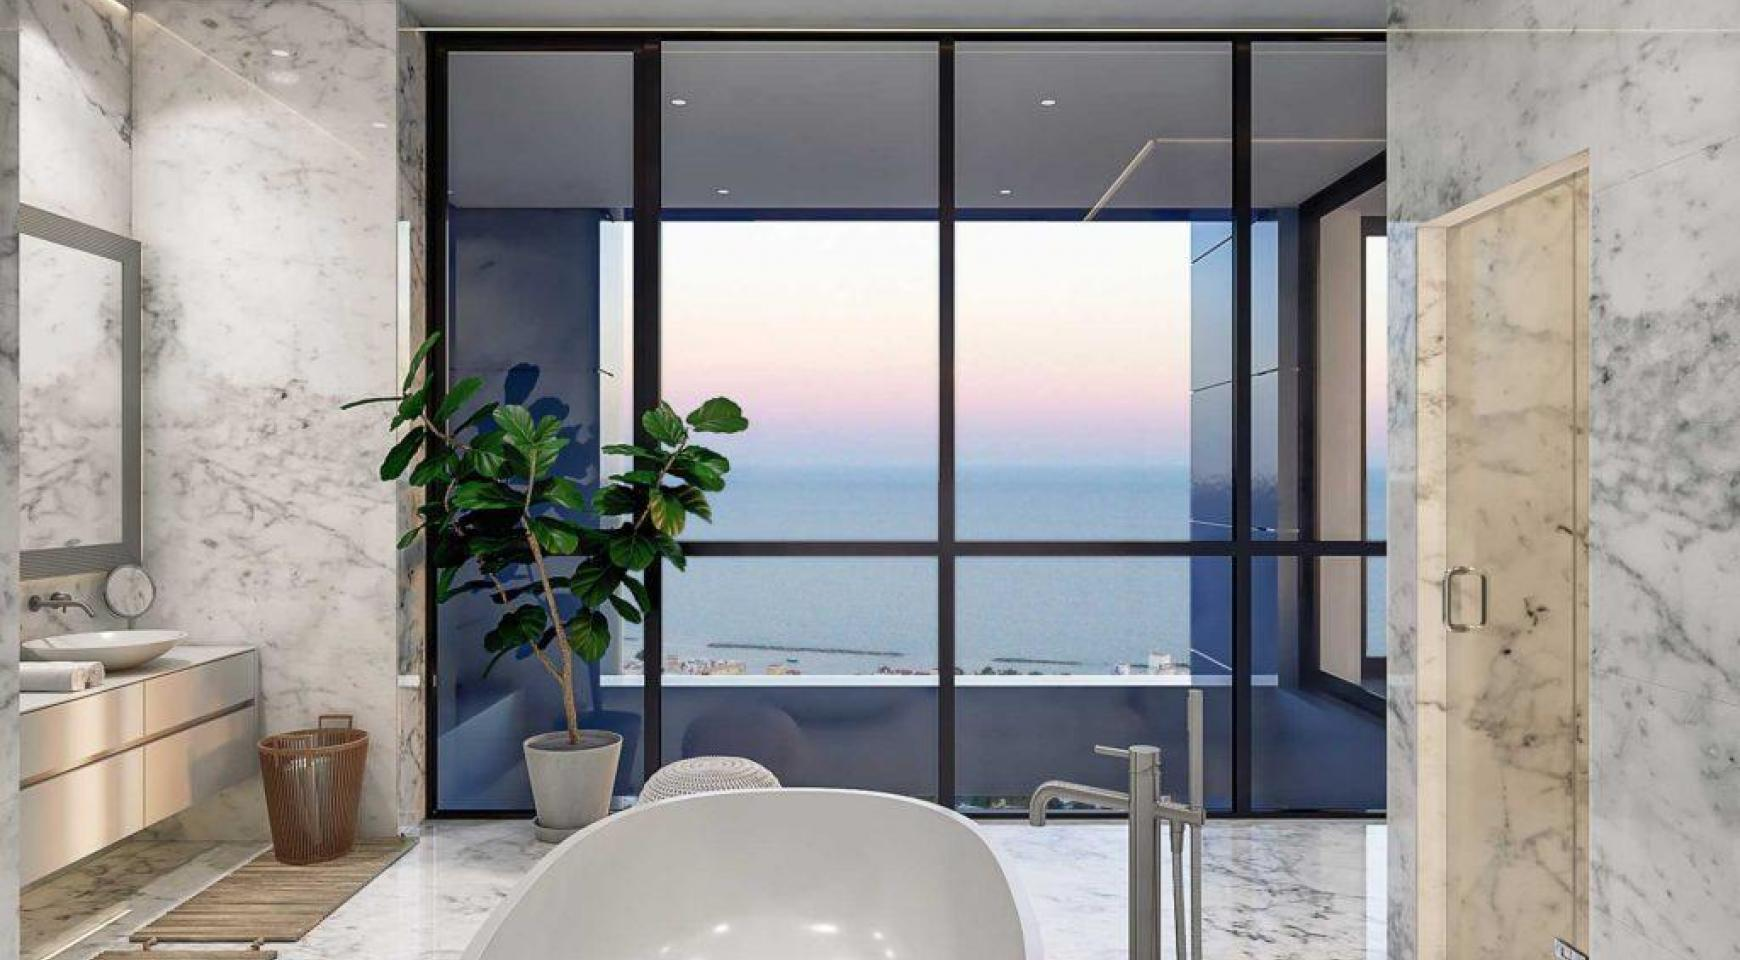 3 Bedroom Apartment with Sea Views in a Luxury Complex - 10